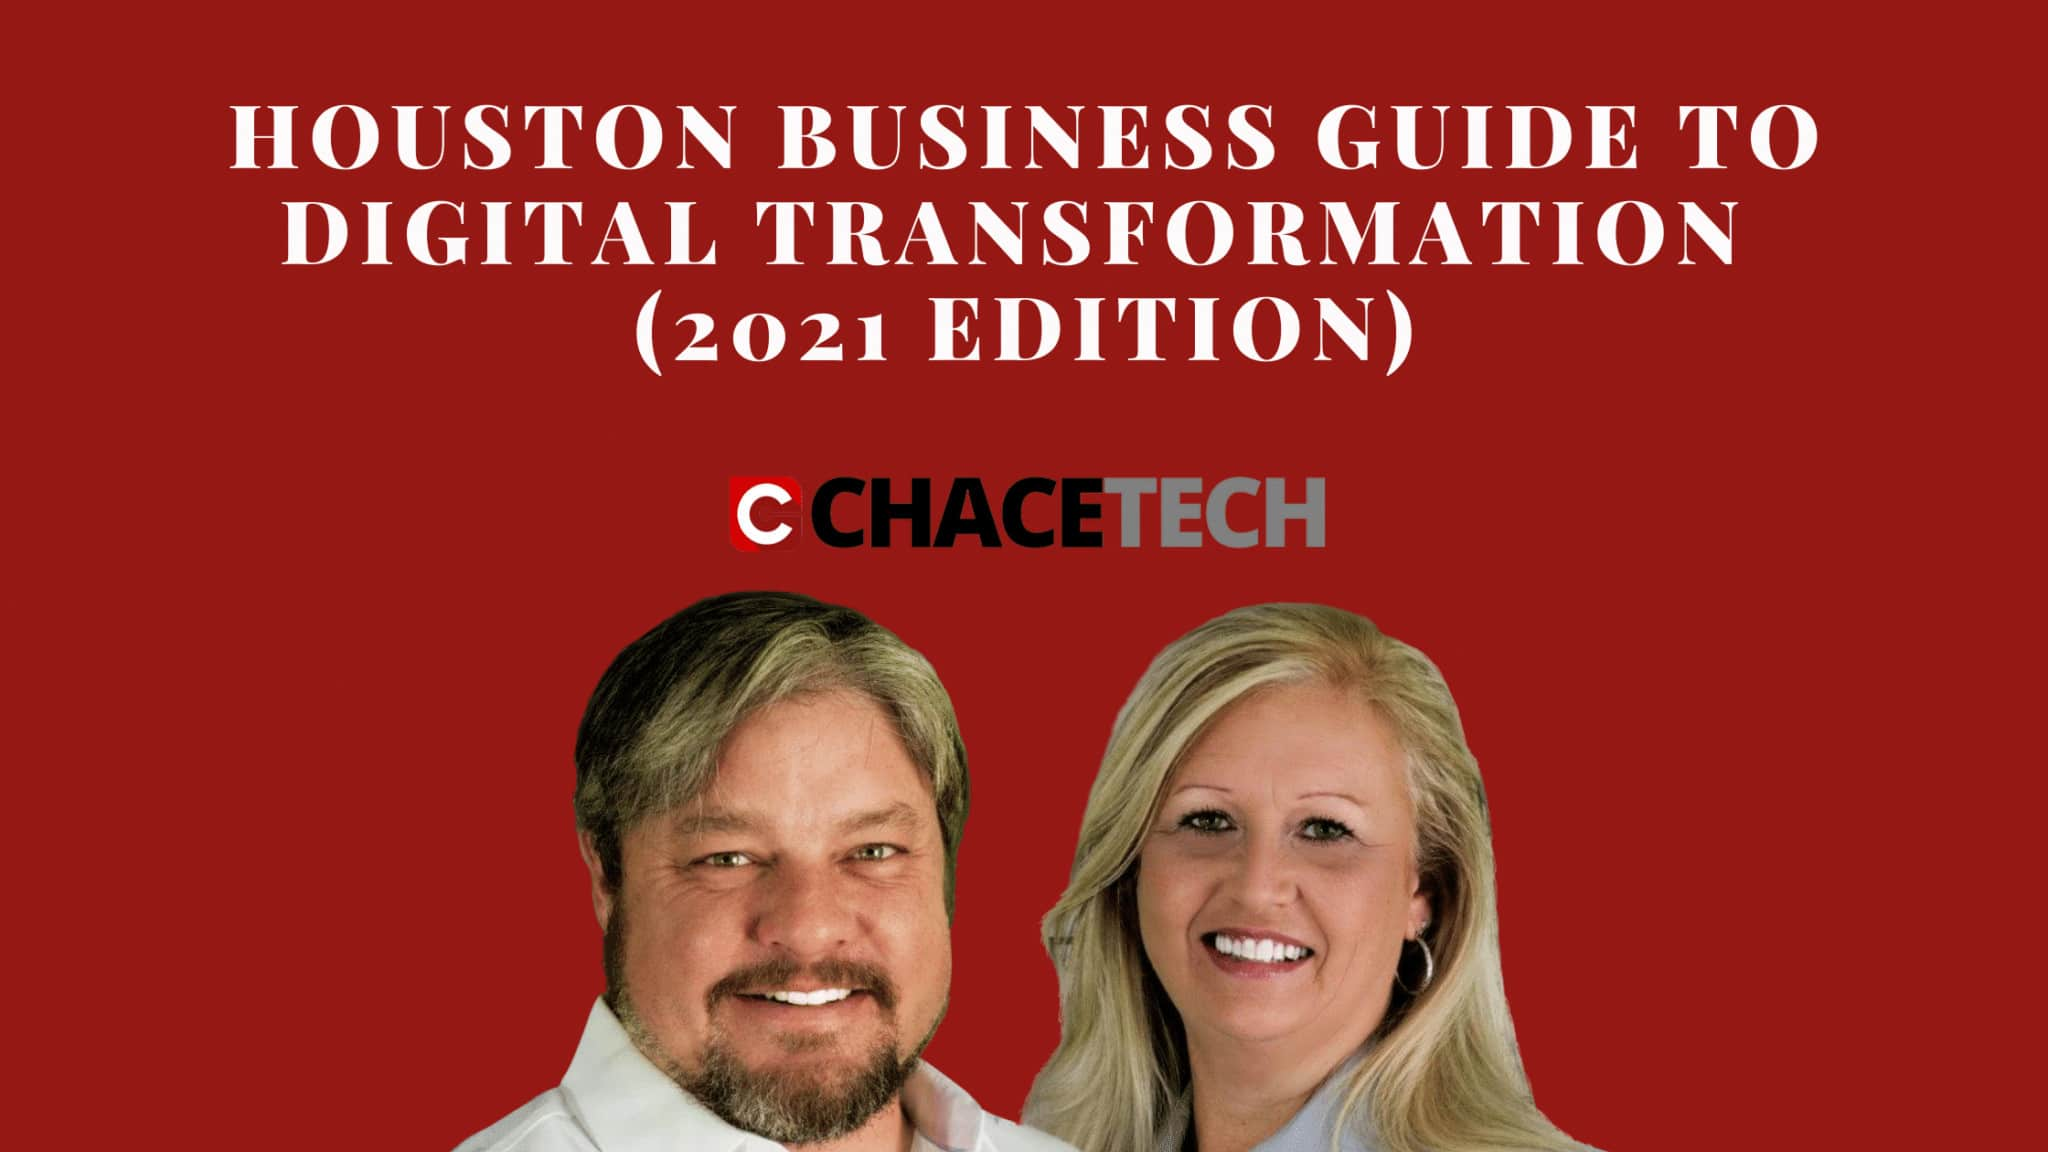 Houston Business Guide To Digital Transformation (2021 Edition)